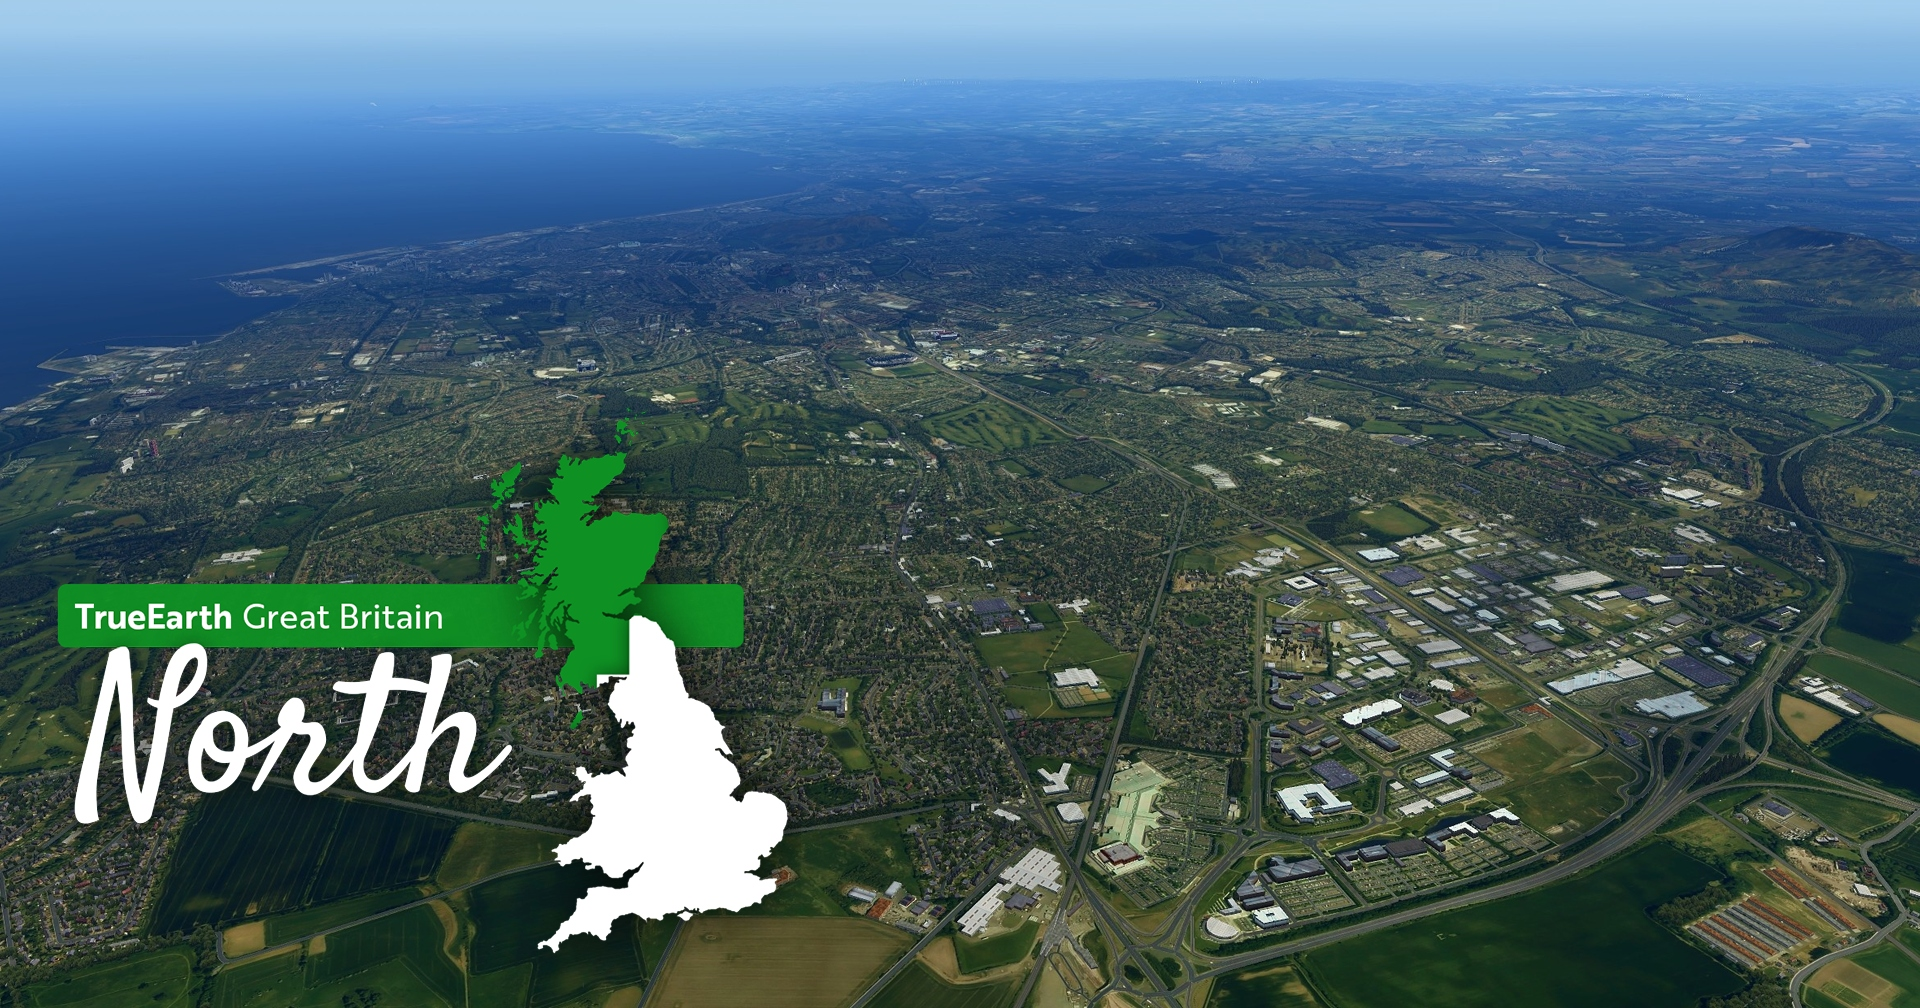 Orbx TrueEarth Great Britain North